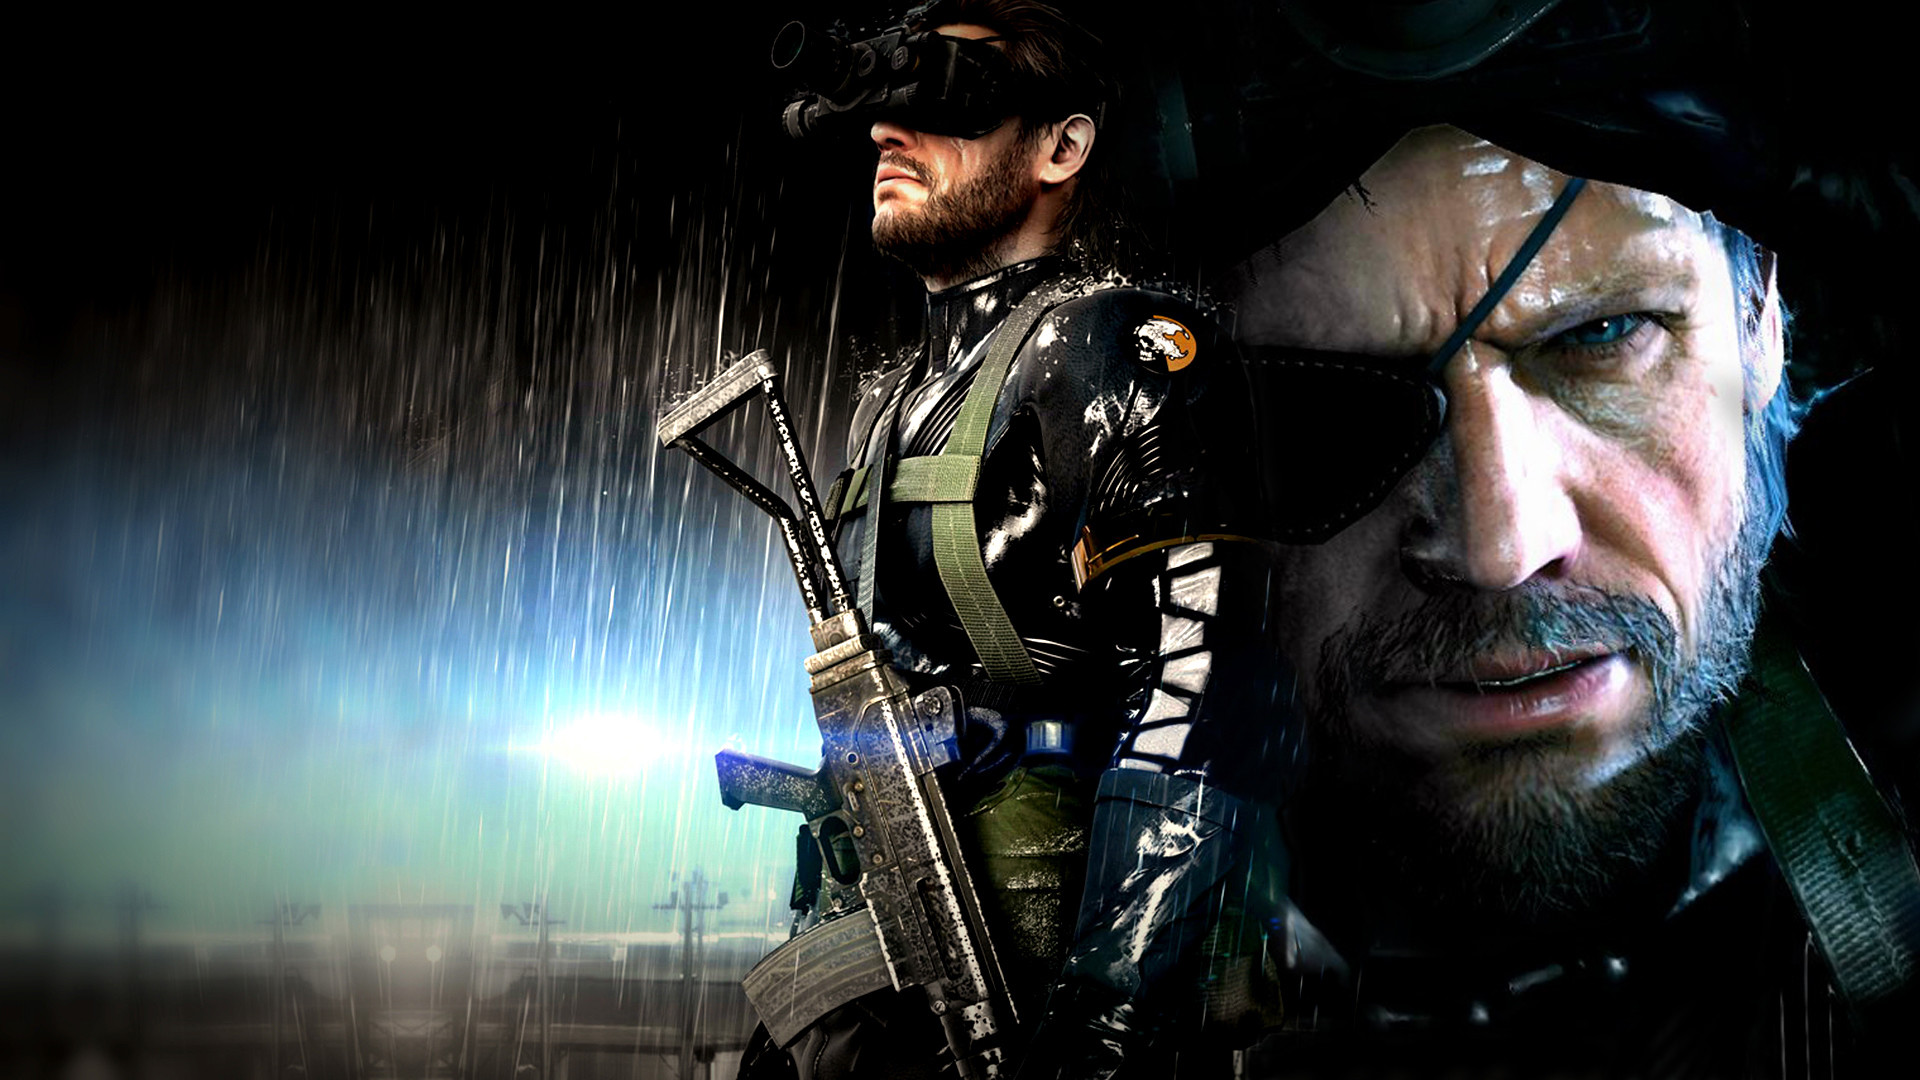 Metal Gear Solid V: The Phantom Pain images